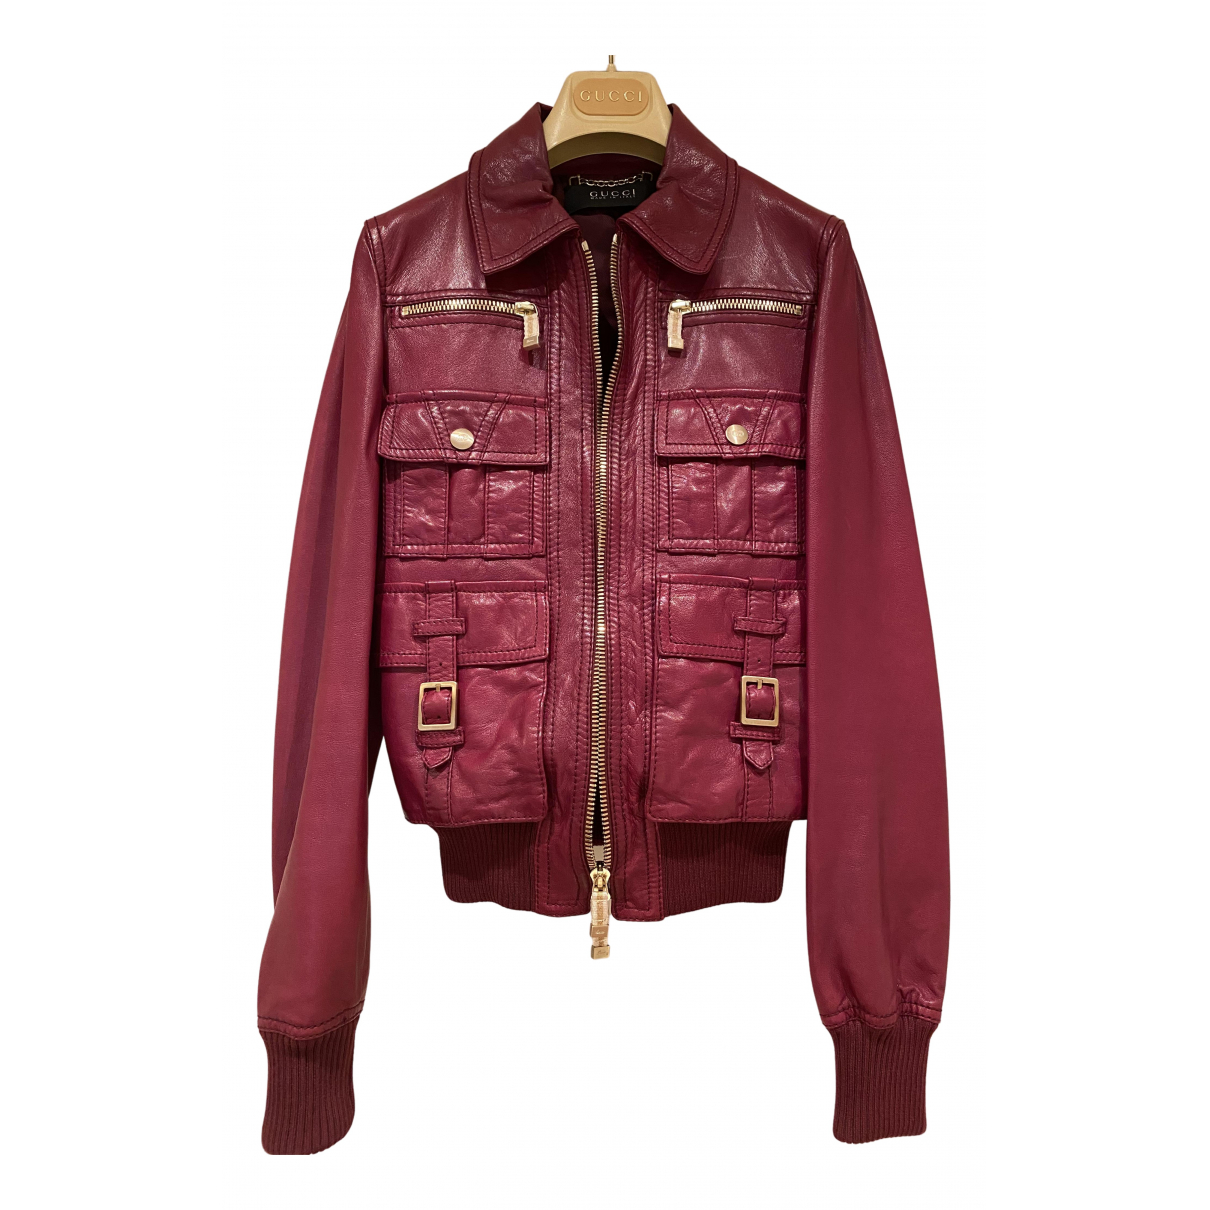 Gucci N Burgundy Leather Leather jacket for Women 40 IT